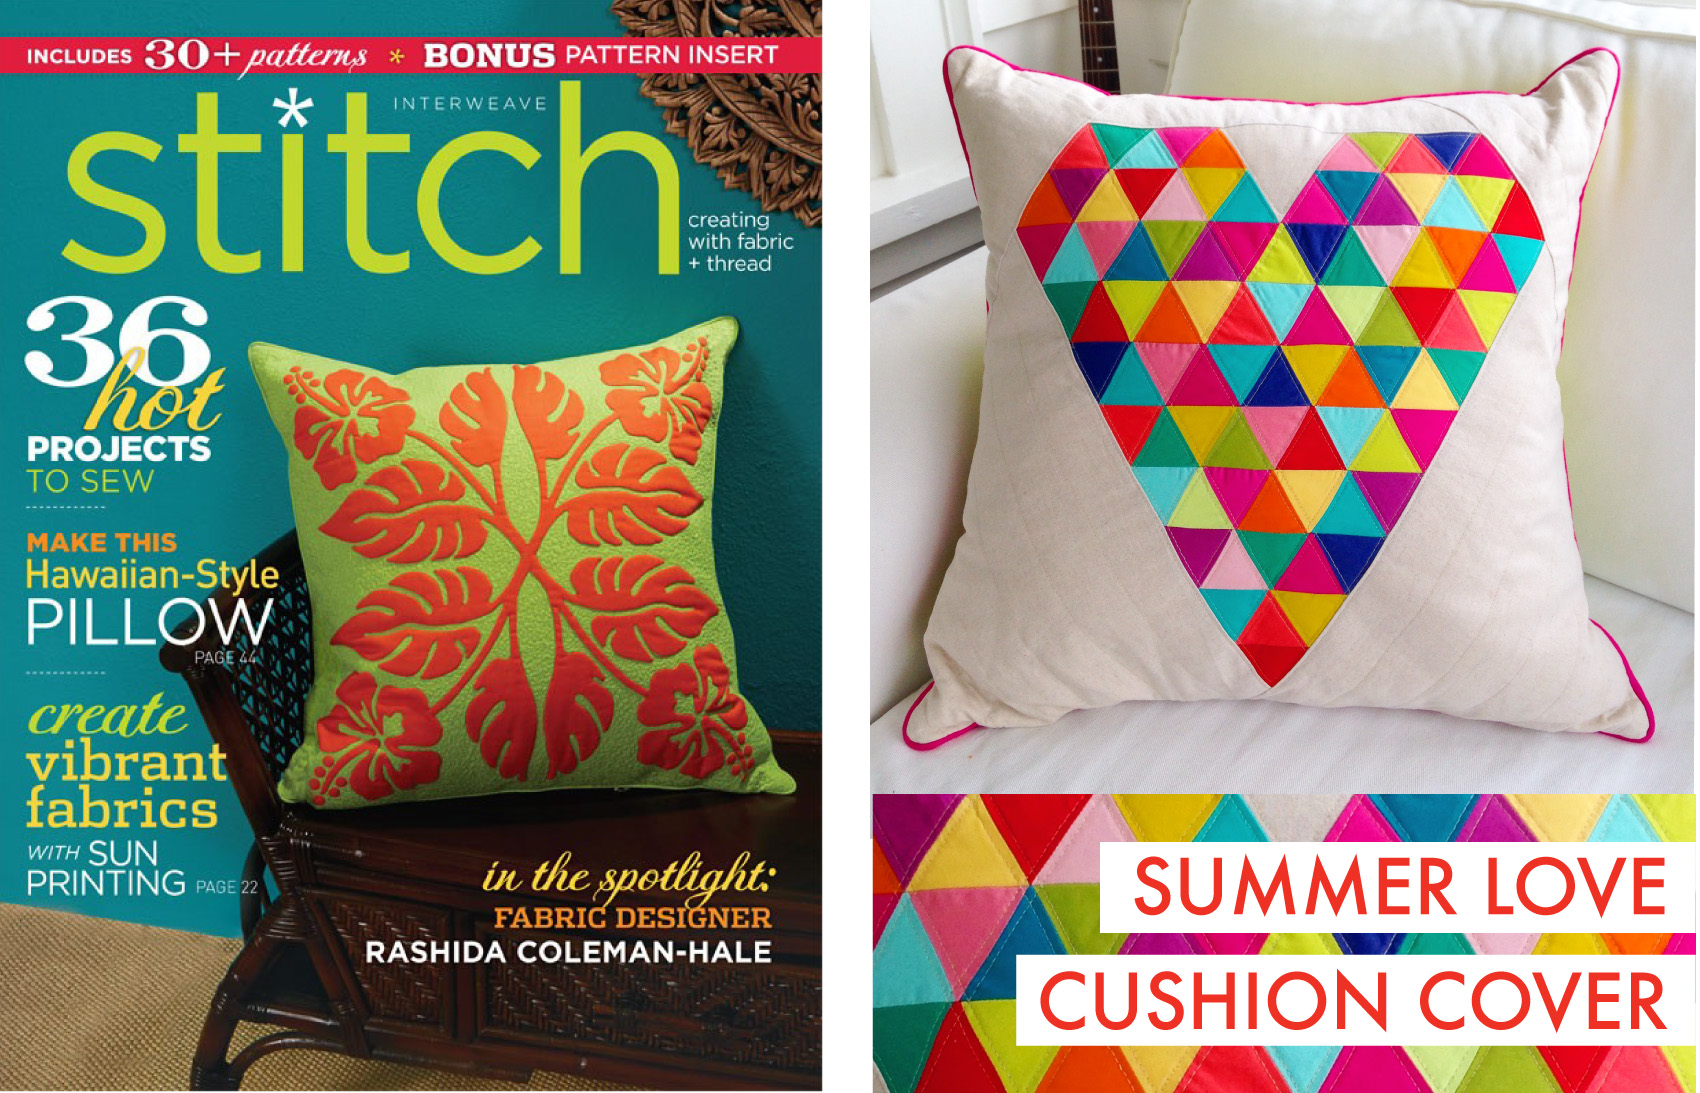 SUMMER LOVE CUSHION COVER